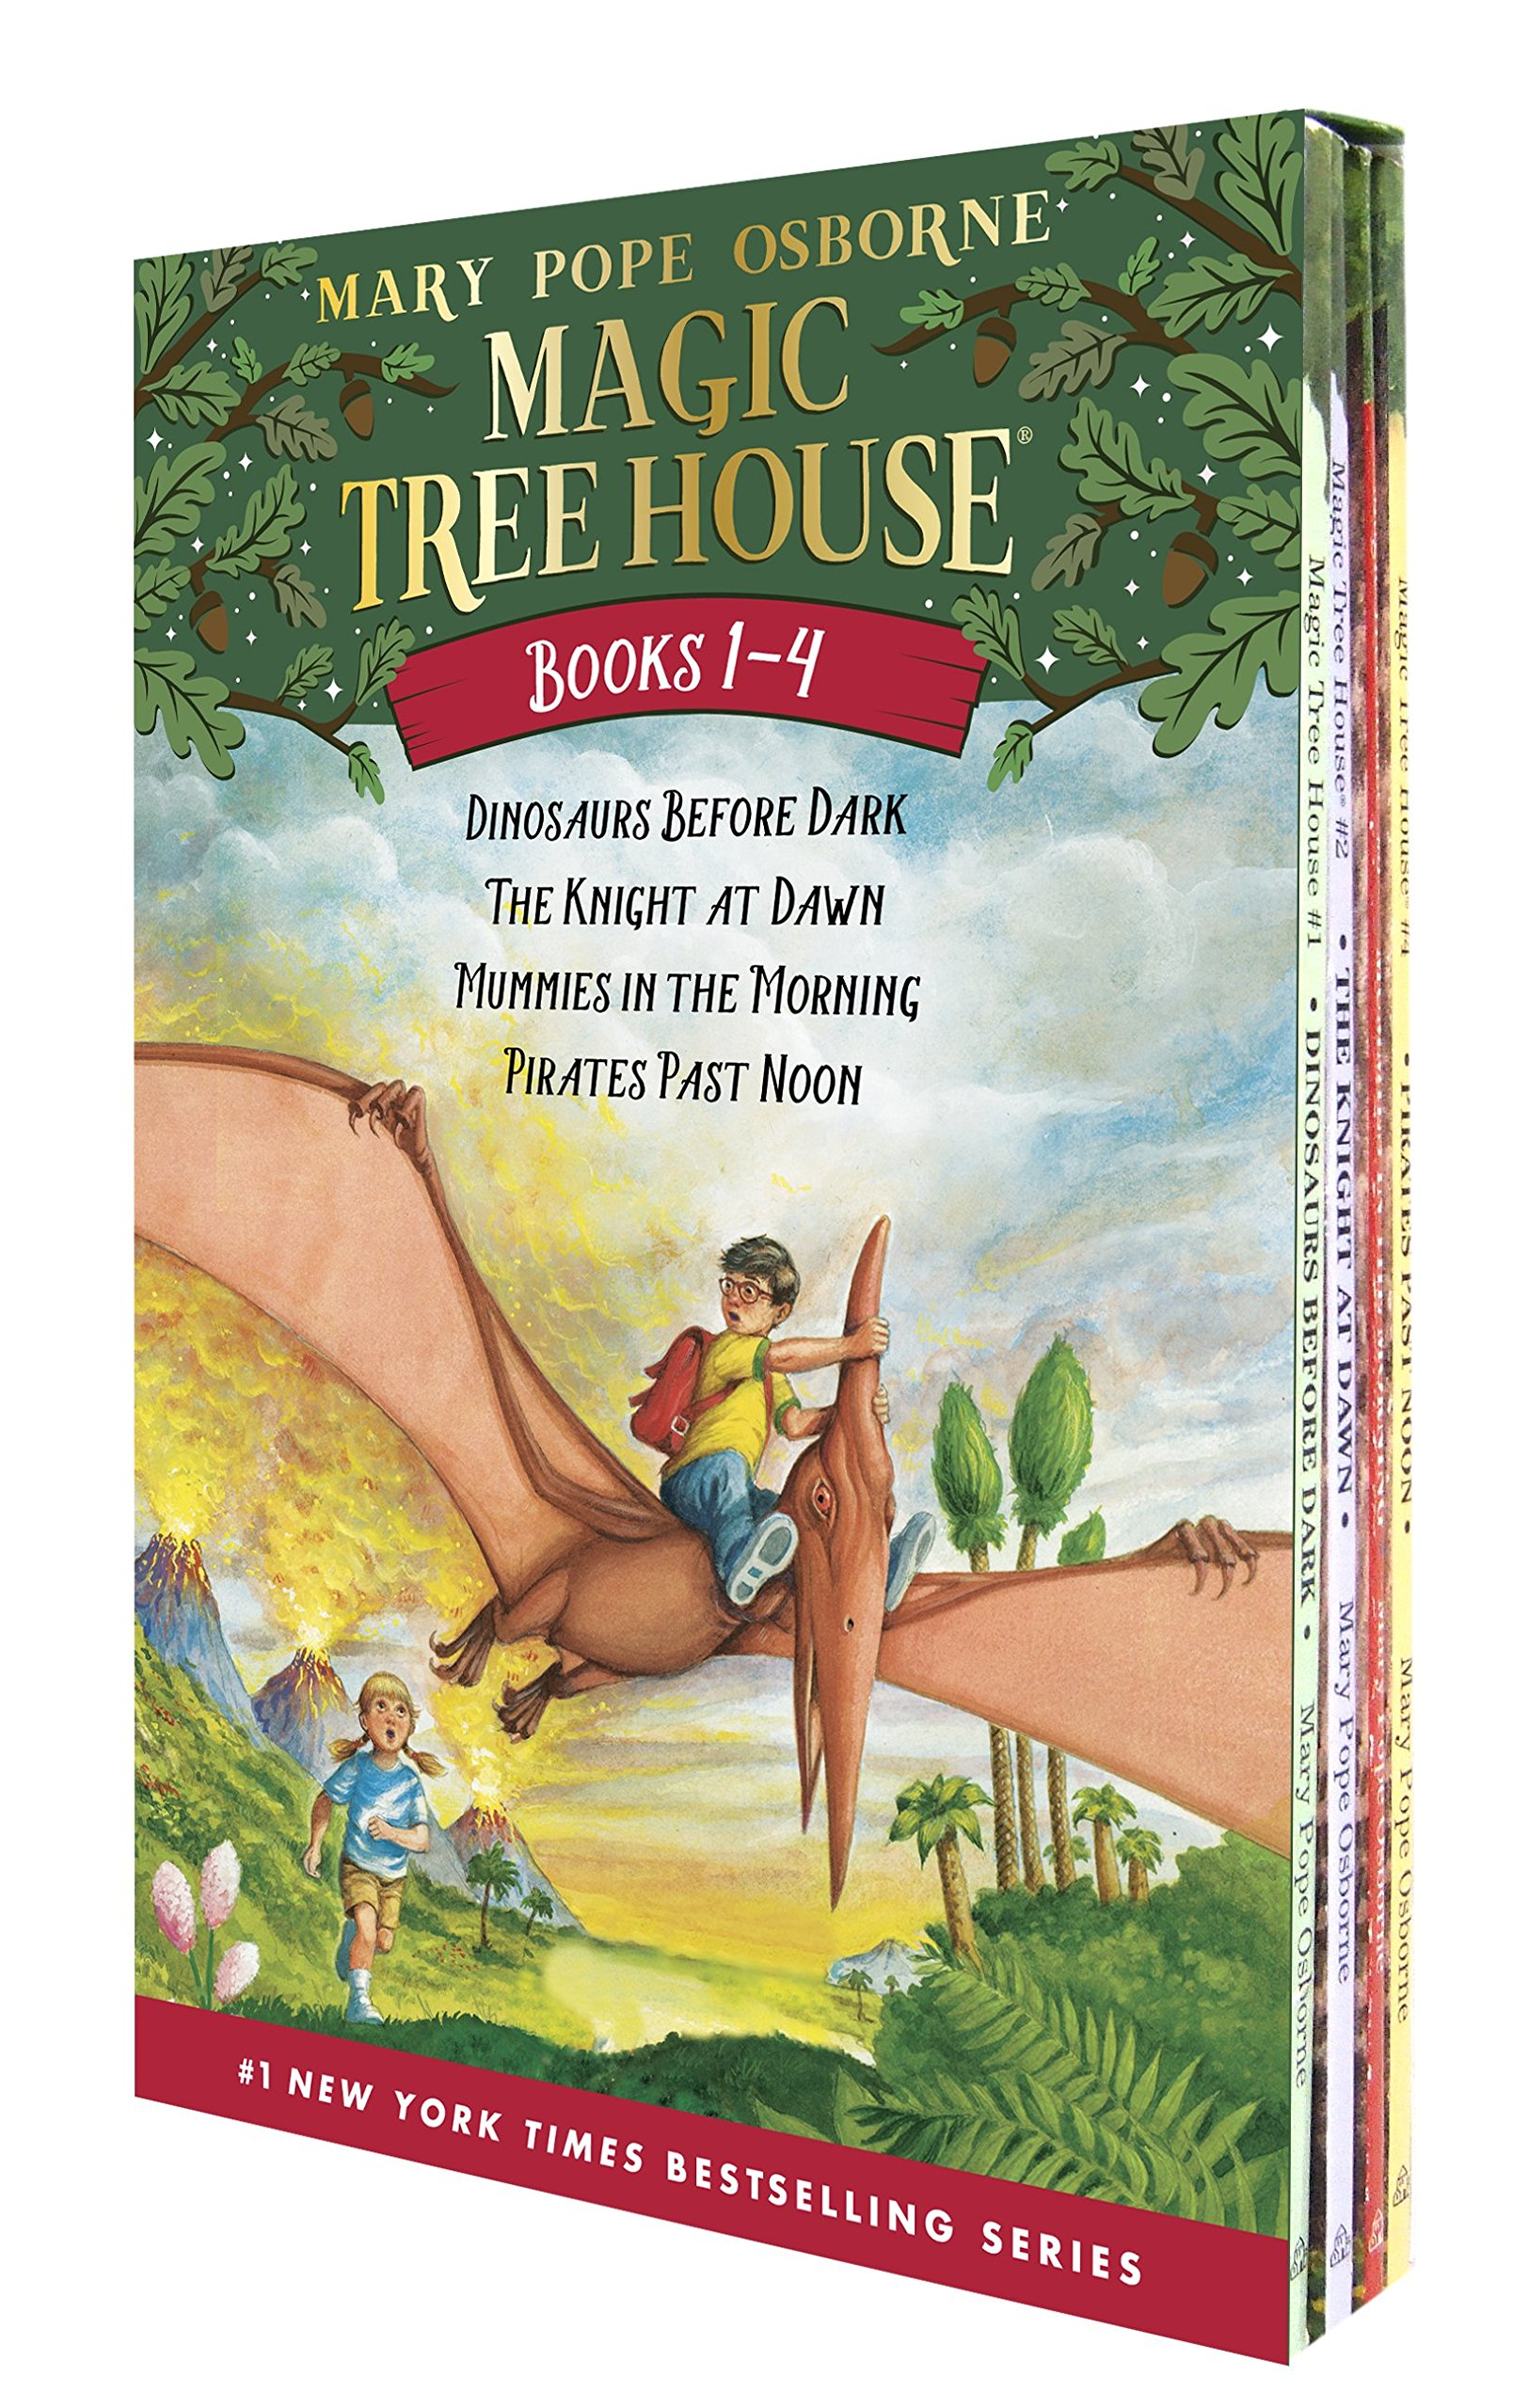 Ordinary Author Of Magic Treehouse Books Part - 3: Magic Tree House Boxed Set, Books 1-4: Dinosaurs Before Dark, The Knight At  Dawn, Mummies In The Morning, And Pirates Past Noon: Mary Pope Osborne, ...